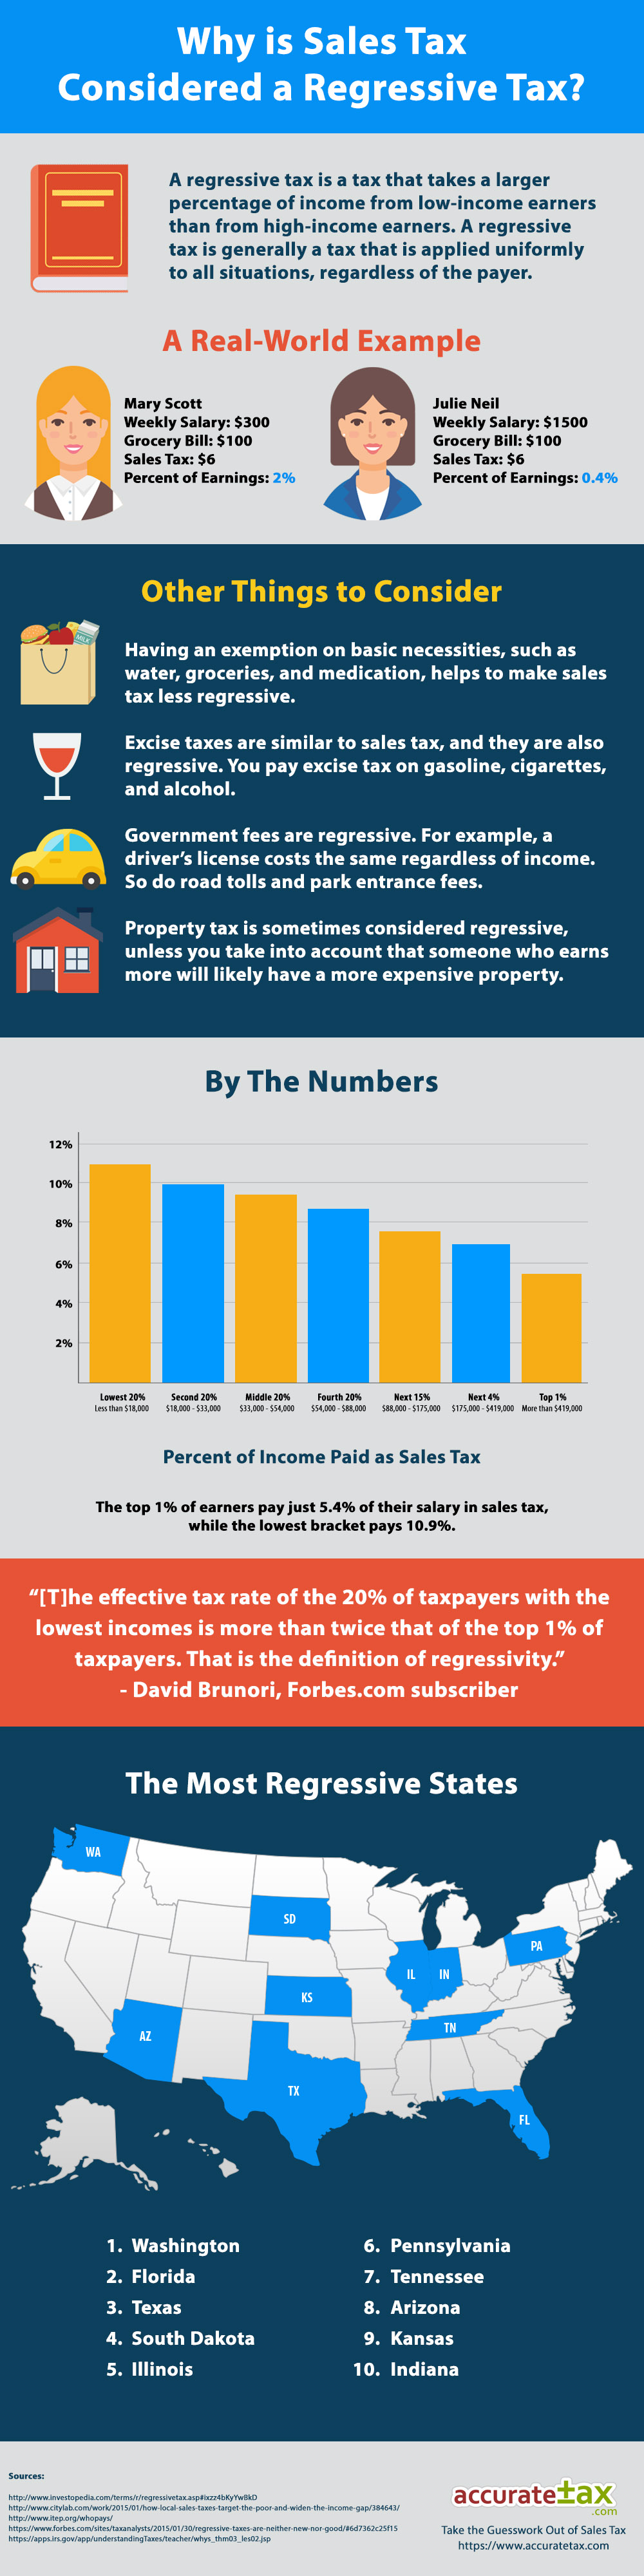 sales tax infographic